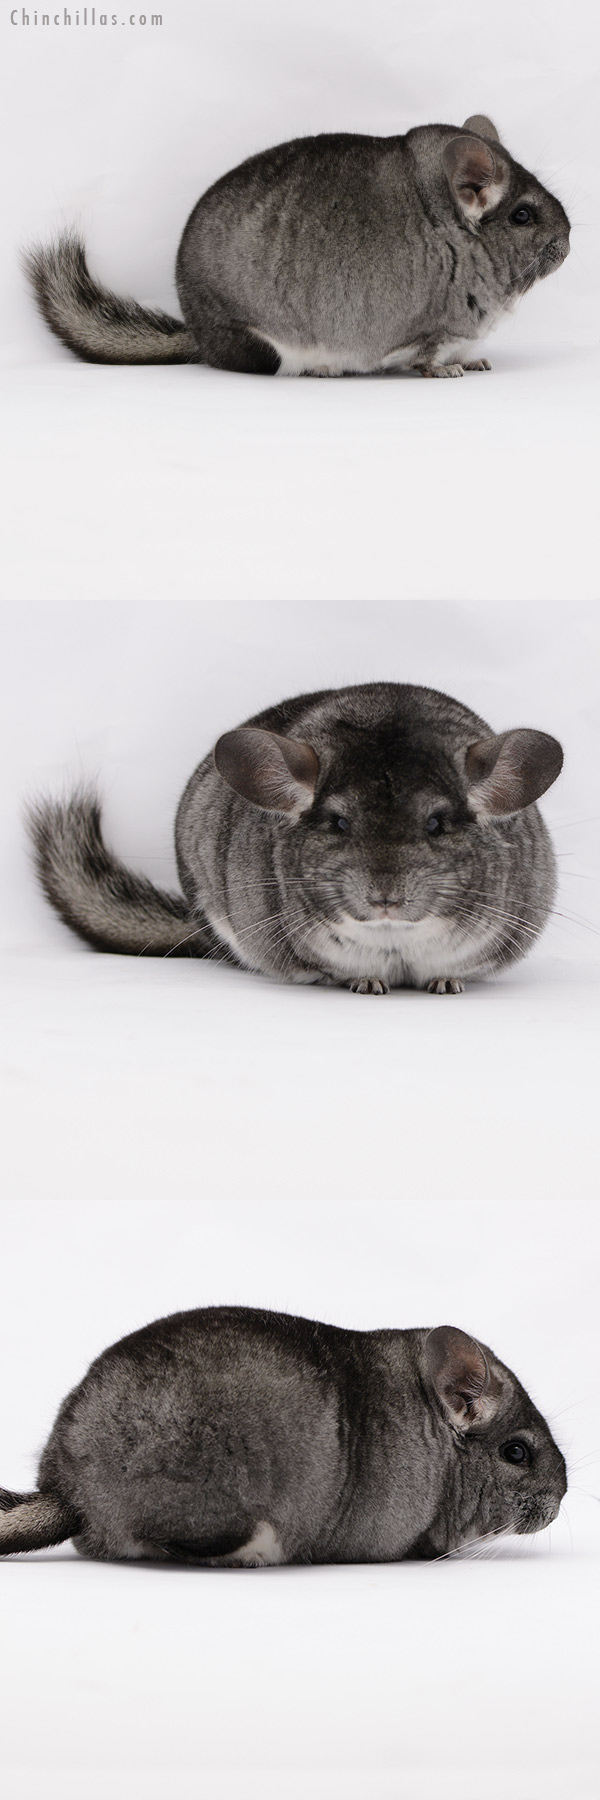 20198 Large Blocky Premium Production Quality Standard Female Chinchilla